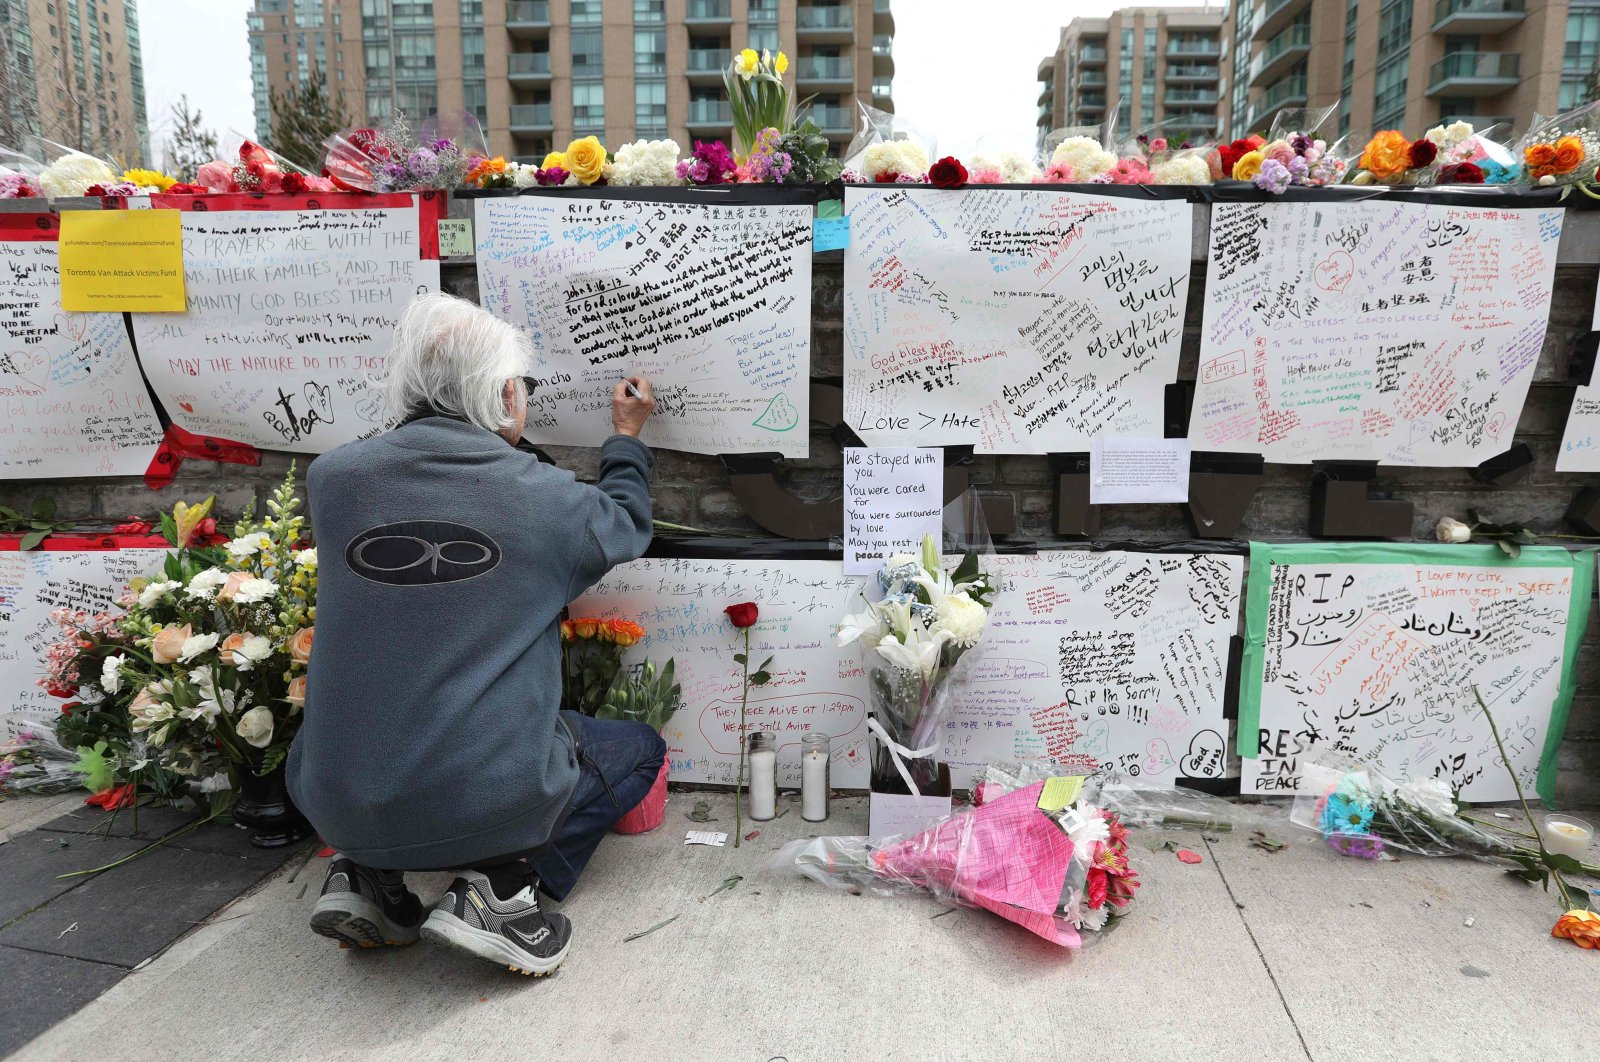 Jack Young leaves a note on April 24, 2018, at a makeshift memorial for victims in the van attack in Toronto, Ontario. (AFP Photo)